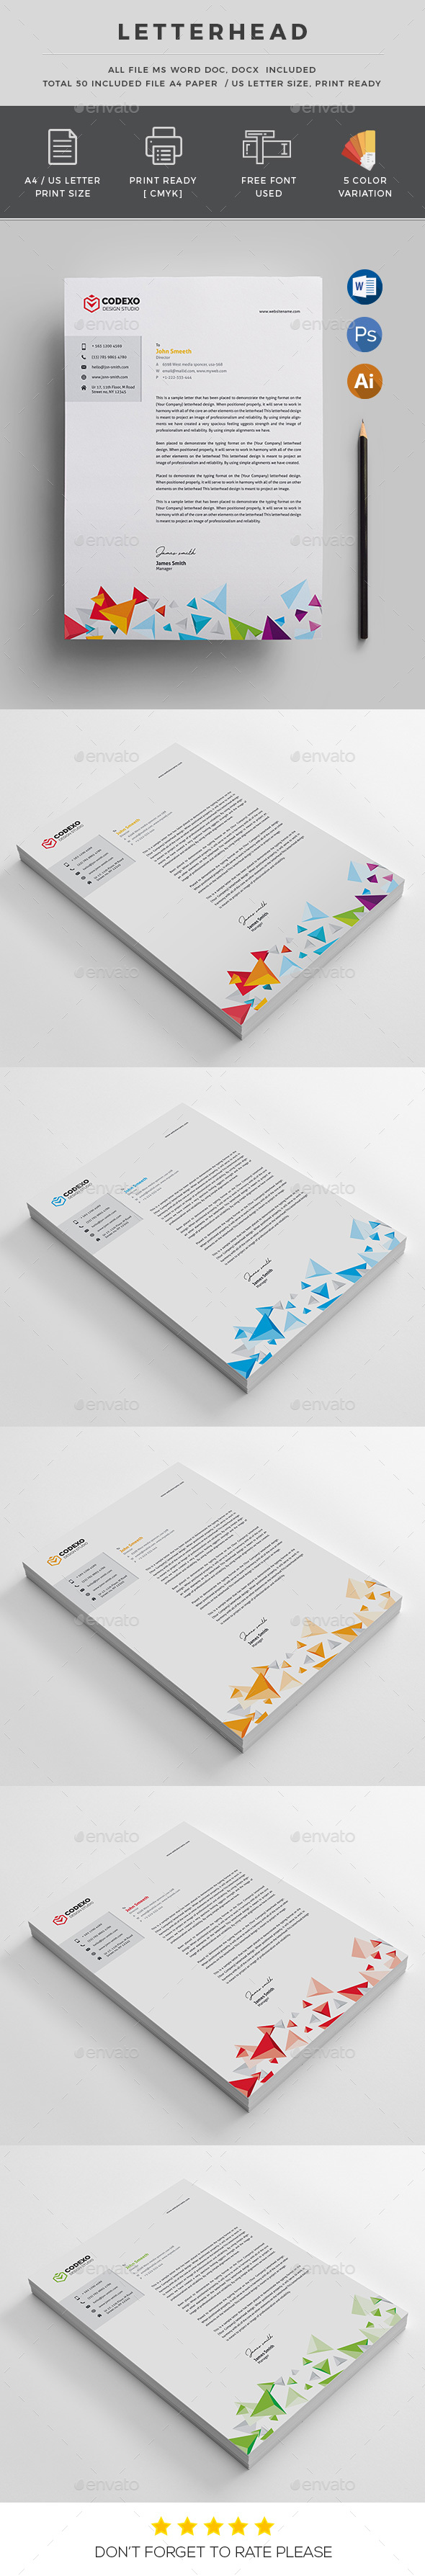 Color Letterhead - Stationery Print Templates